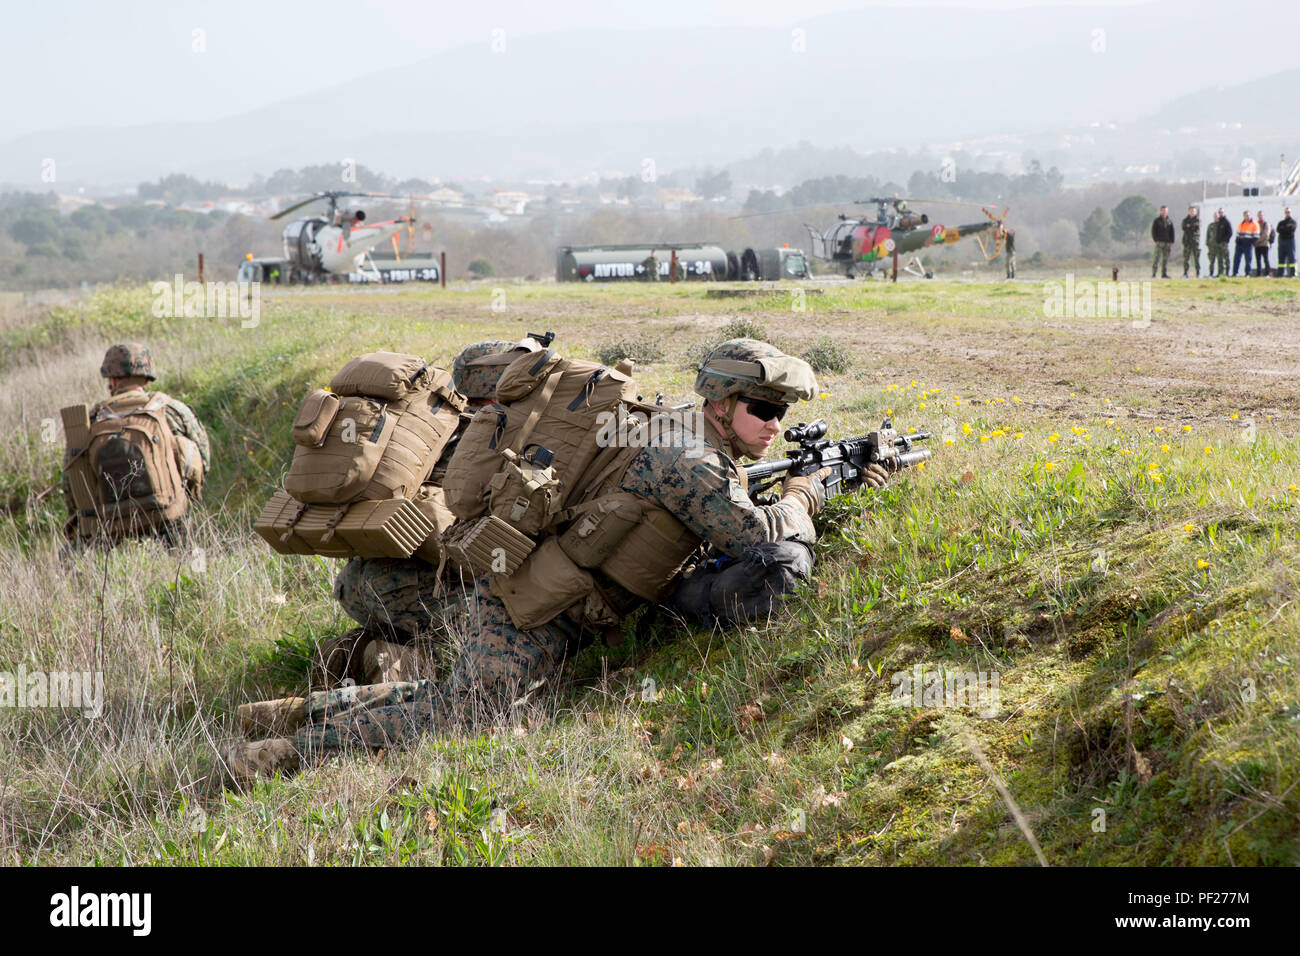 U.S. Marines with Special-Purpose Marine Air-Ground Task Force Crisis Response- Africa set up security during an airfield seizure exercise conducted alongside the Portuguese Marines as part of Operation Real Thaw in Seia, Portugal, Feb. 22, 2016. Marines with SPMAGTF-CR-AF are continuously conducting bilateral training with partner nations to sustain and improve core mission essential tasks and build interoperability to prepare for real world operations on the African continent. (U.S. Marine Corps photo by Sgt. Tia Nagle) - Stock Image